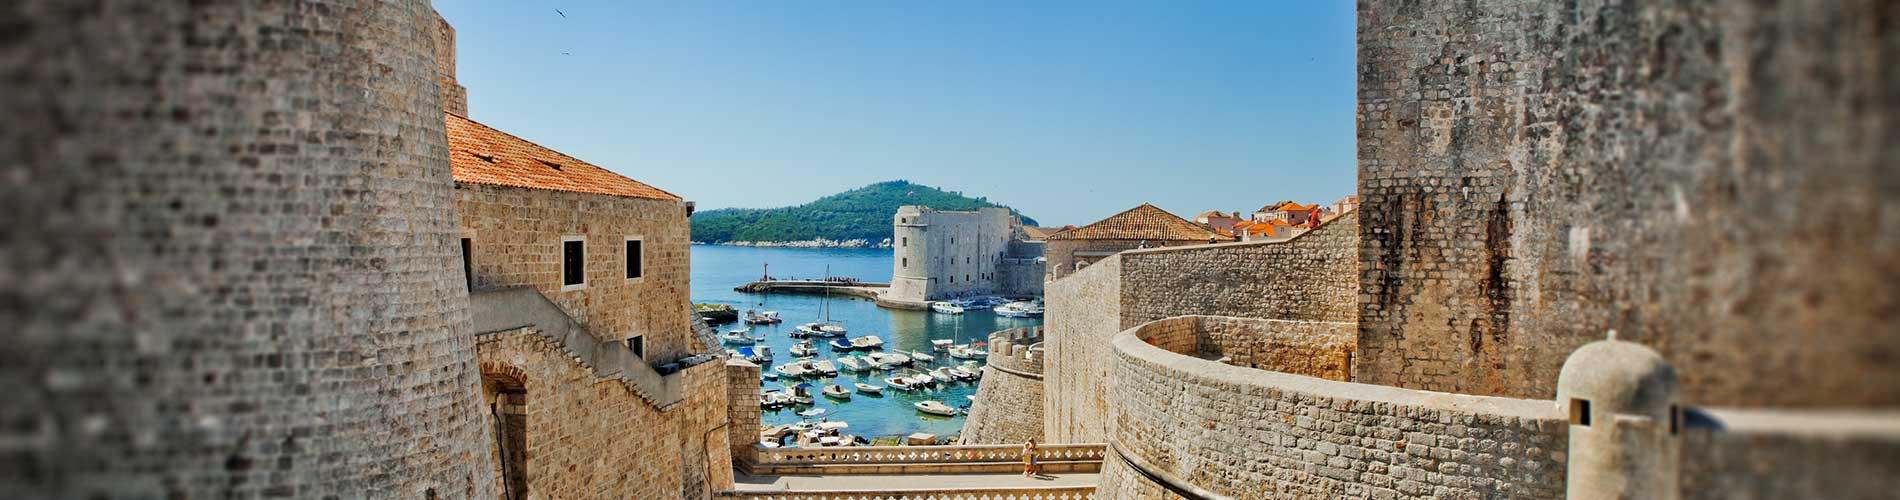 Dubrovnik old city Croatia fortress.jpg